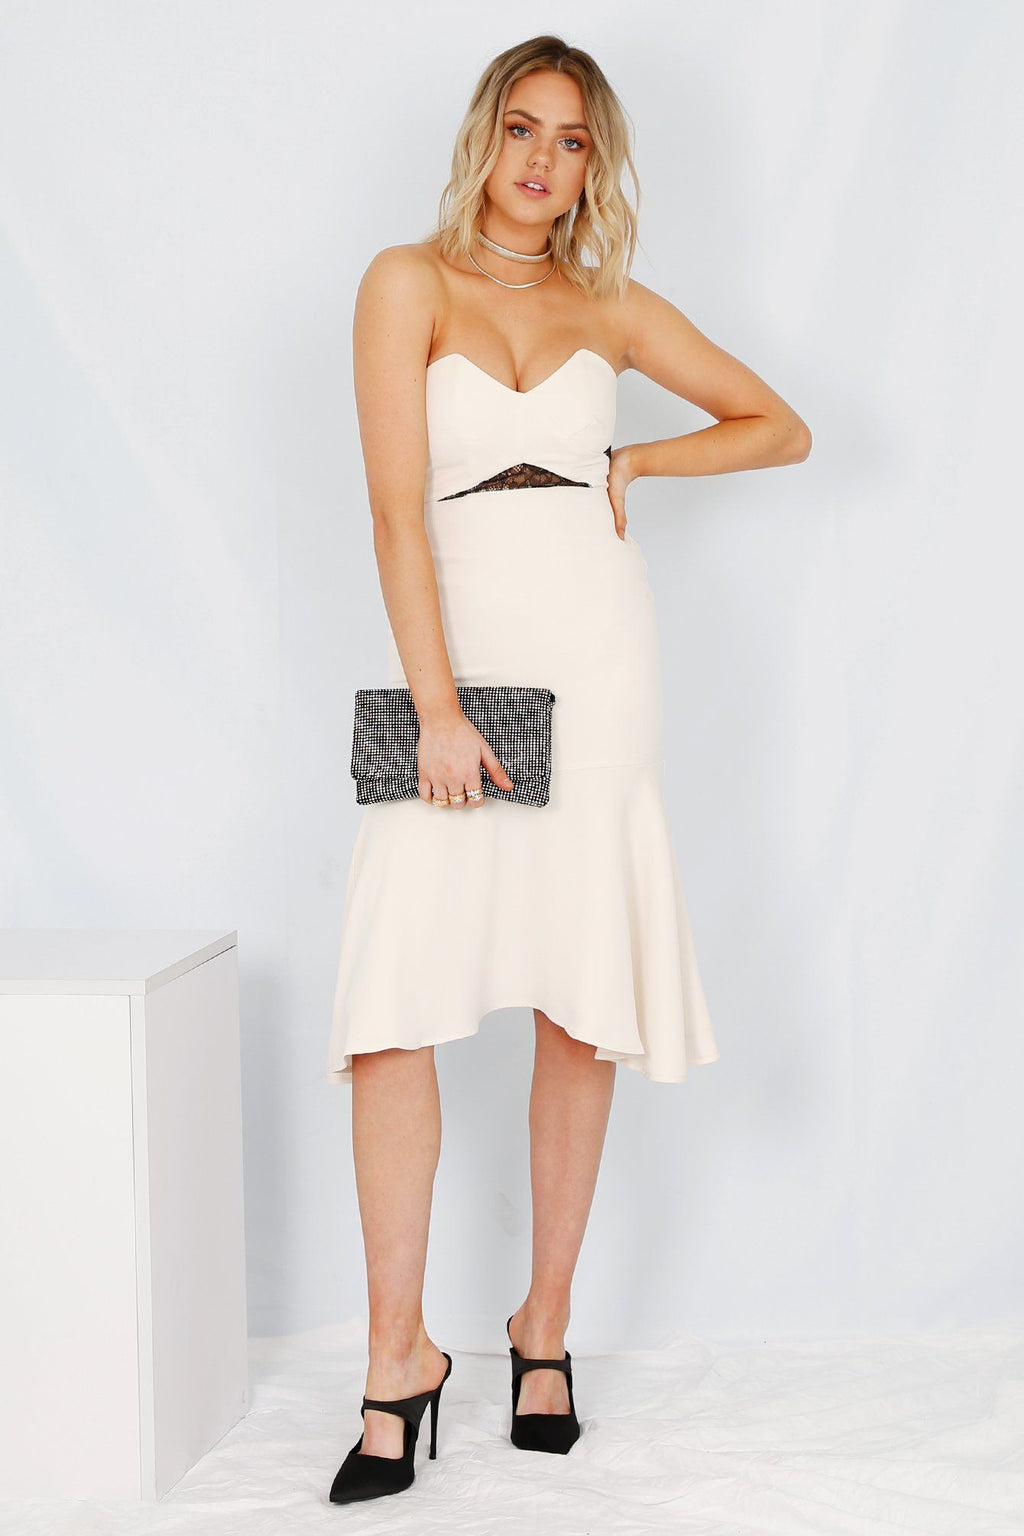 KARINA GRIMALDI | Devon Dress - Cream